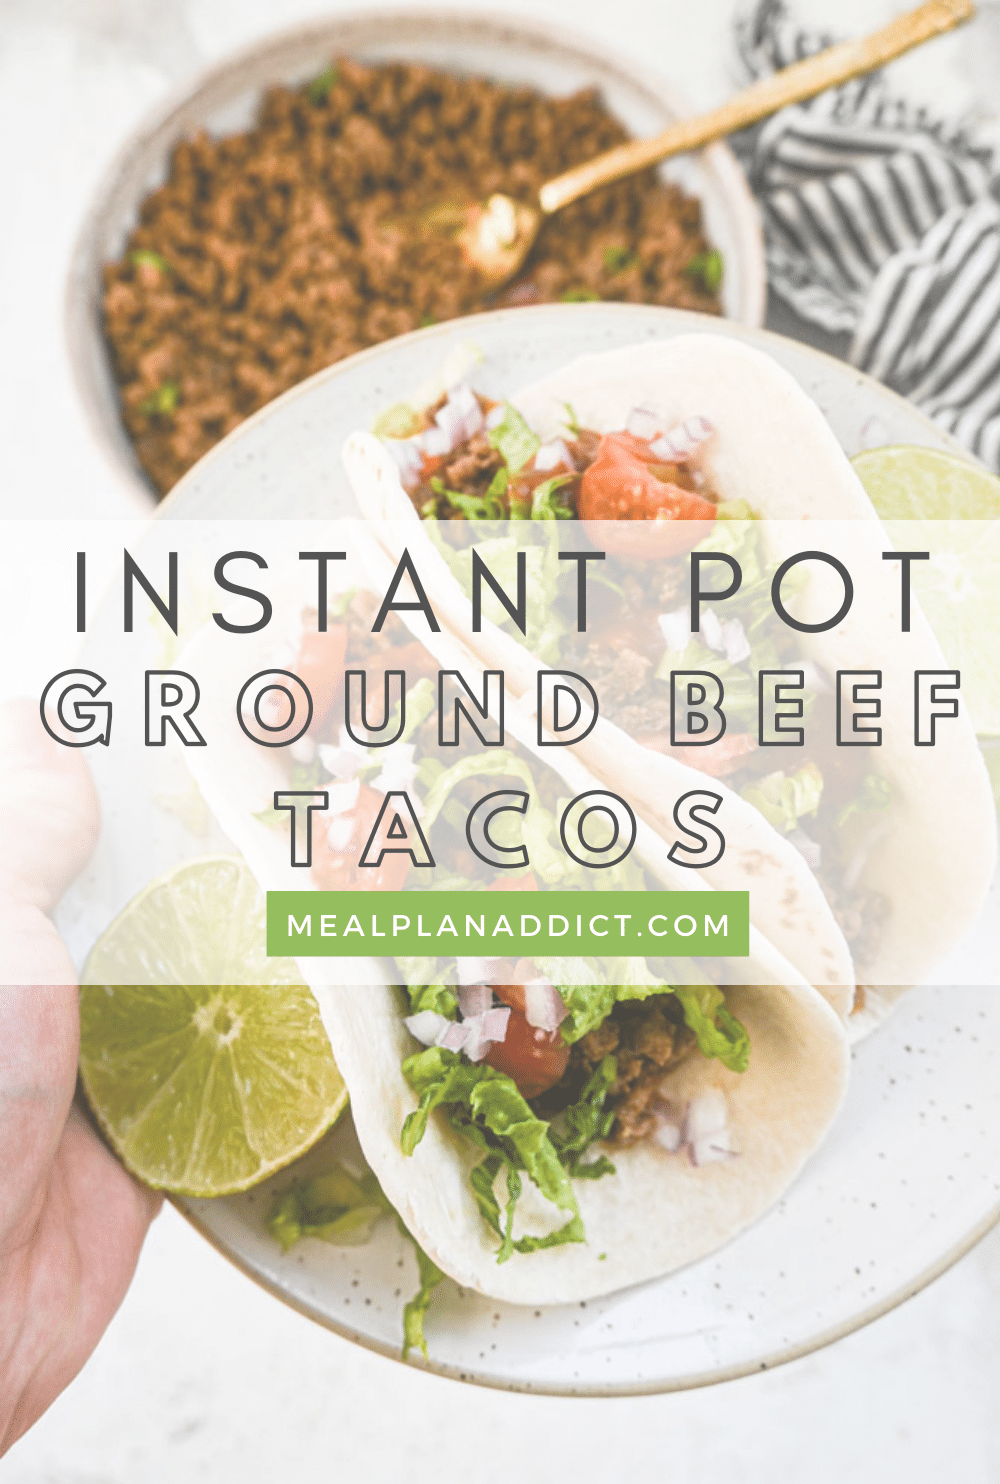 Easy Make Ahead Instant Pot Ground Beef Tacos